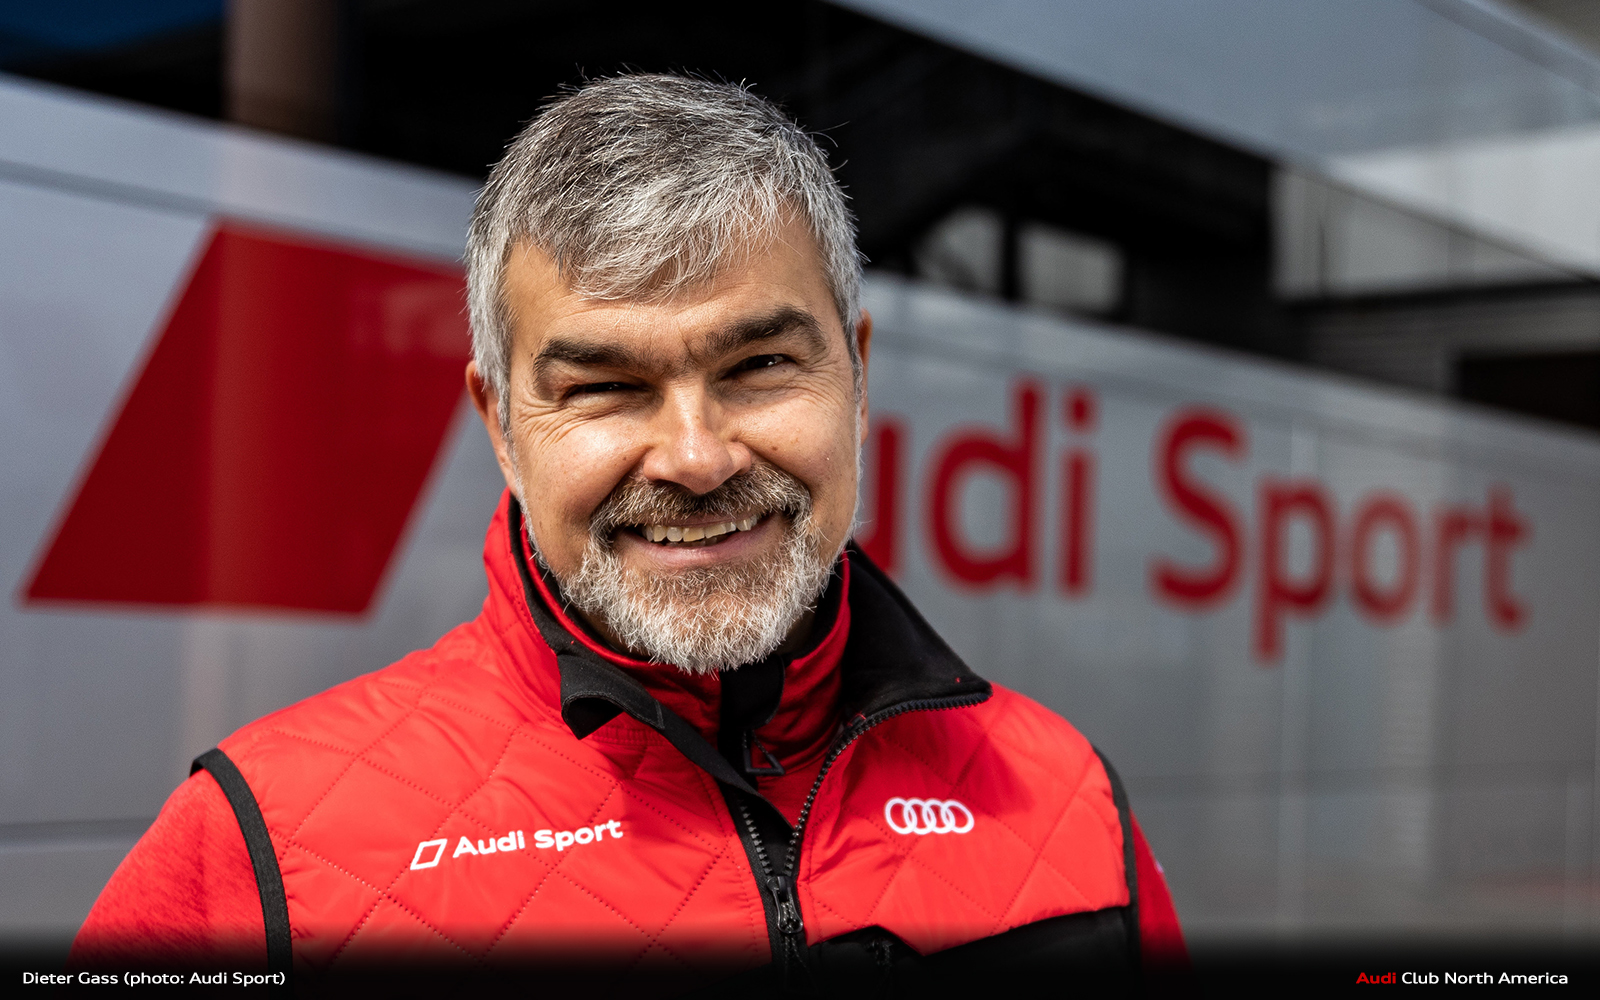 """Dieter Gass: """"In the DTM, the fans can look forward to super-thrilling racing"""""""